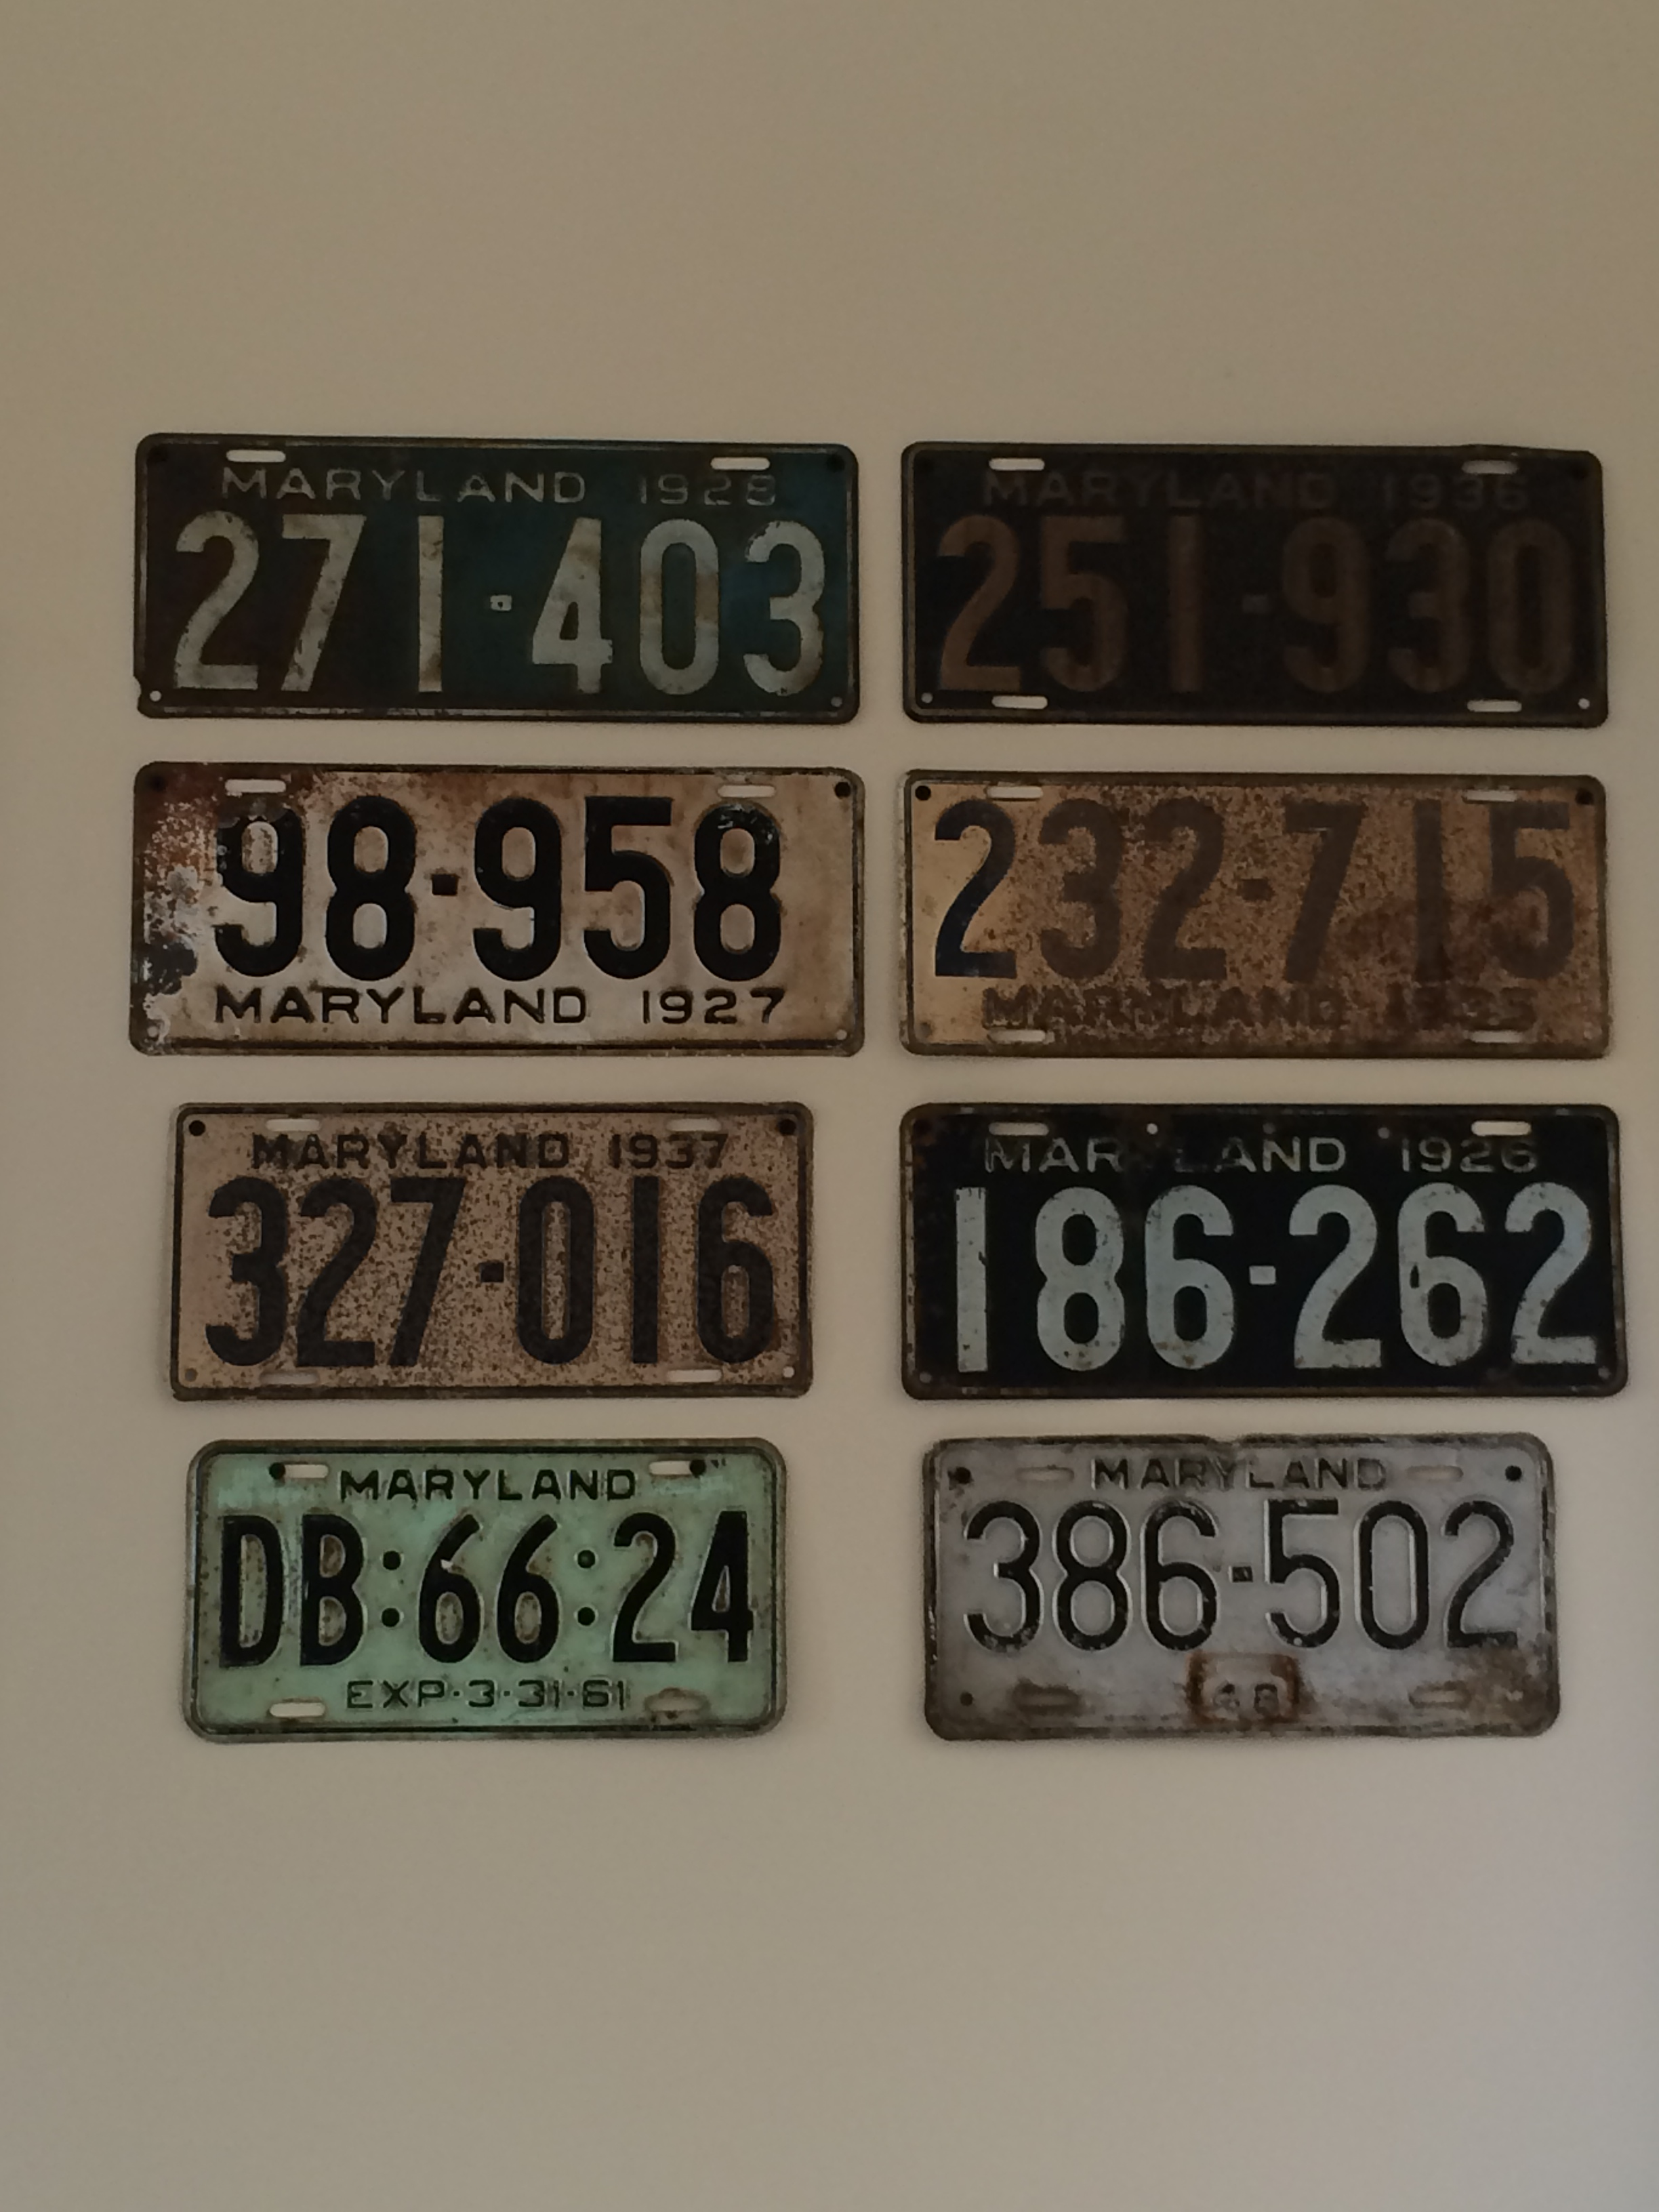 Item: Expired license plates